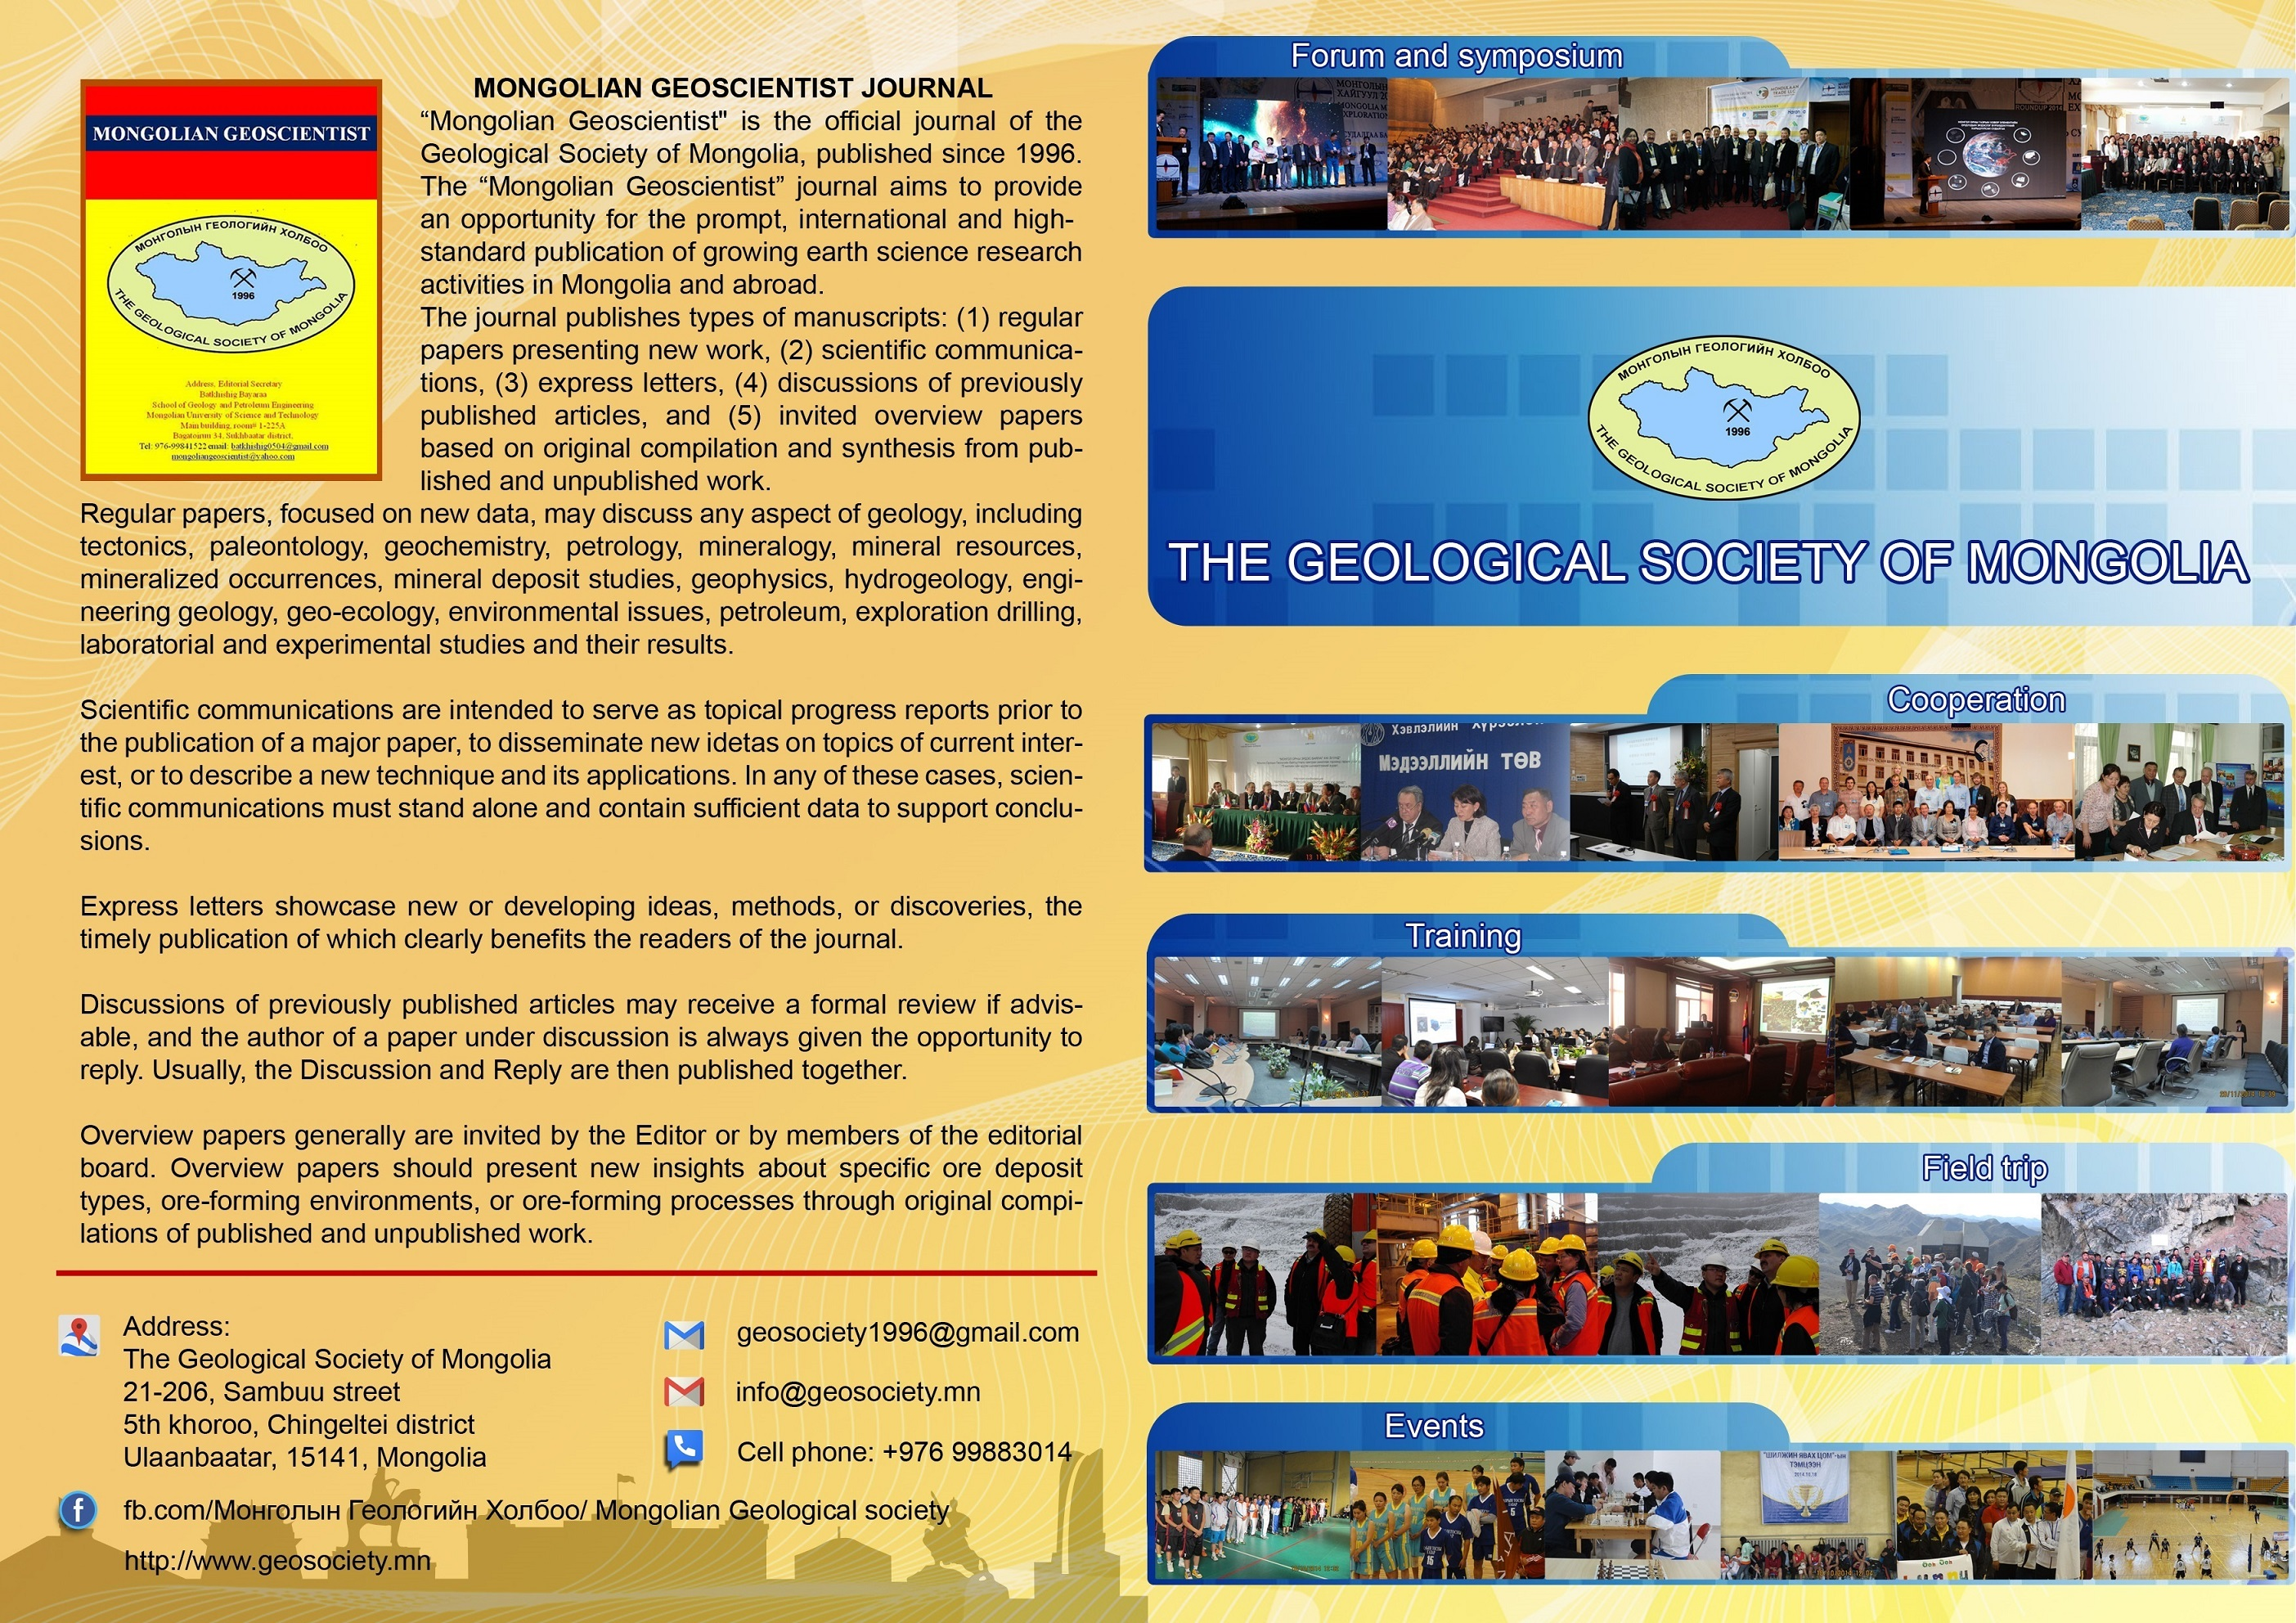 MONGOLIAN GEOSCIENTIST JOURNAL